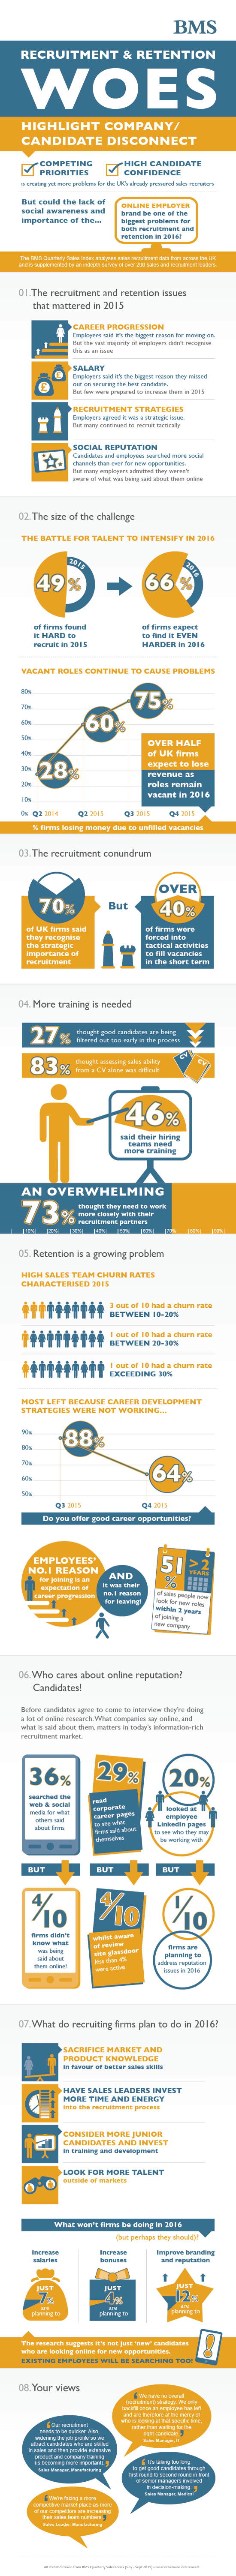 retention and recruitment woes